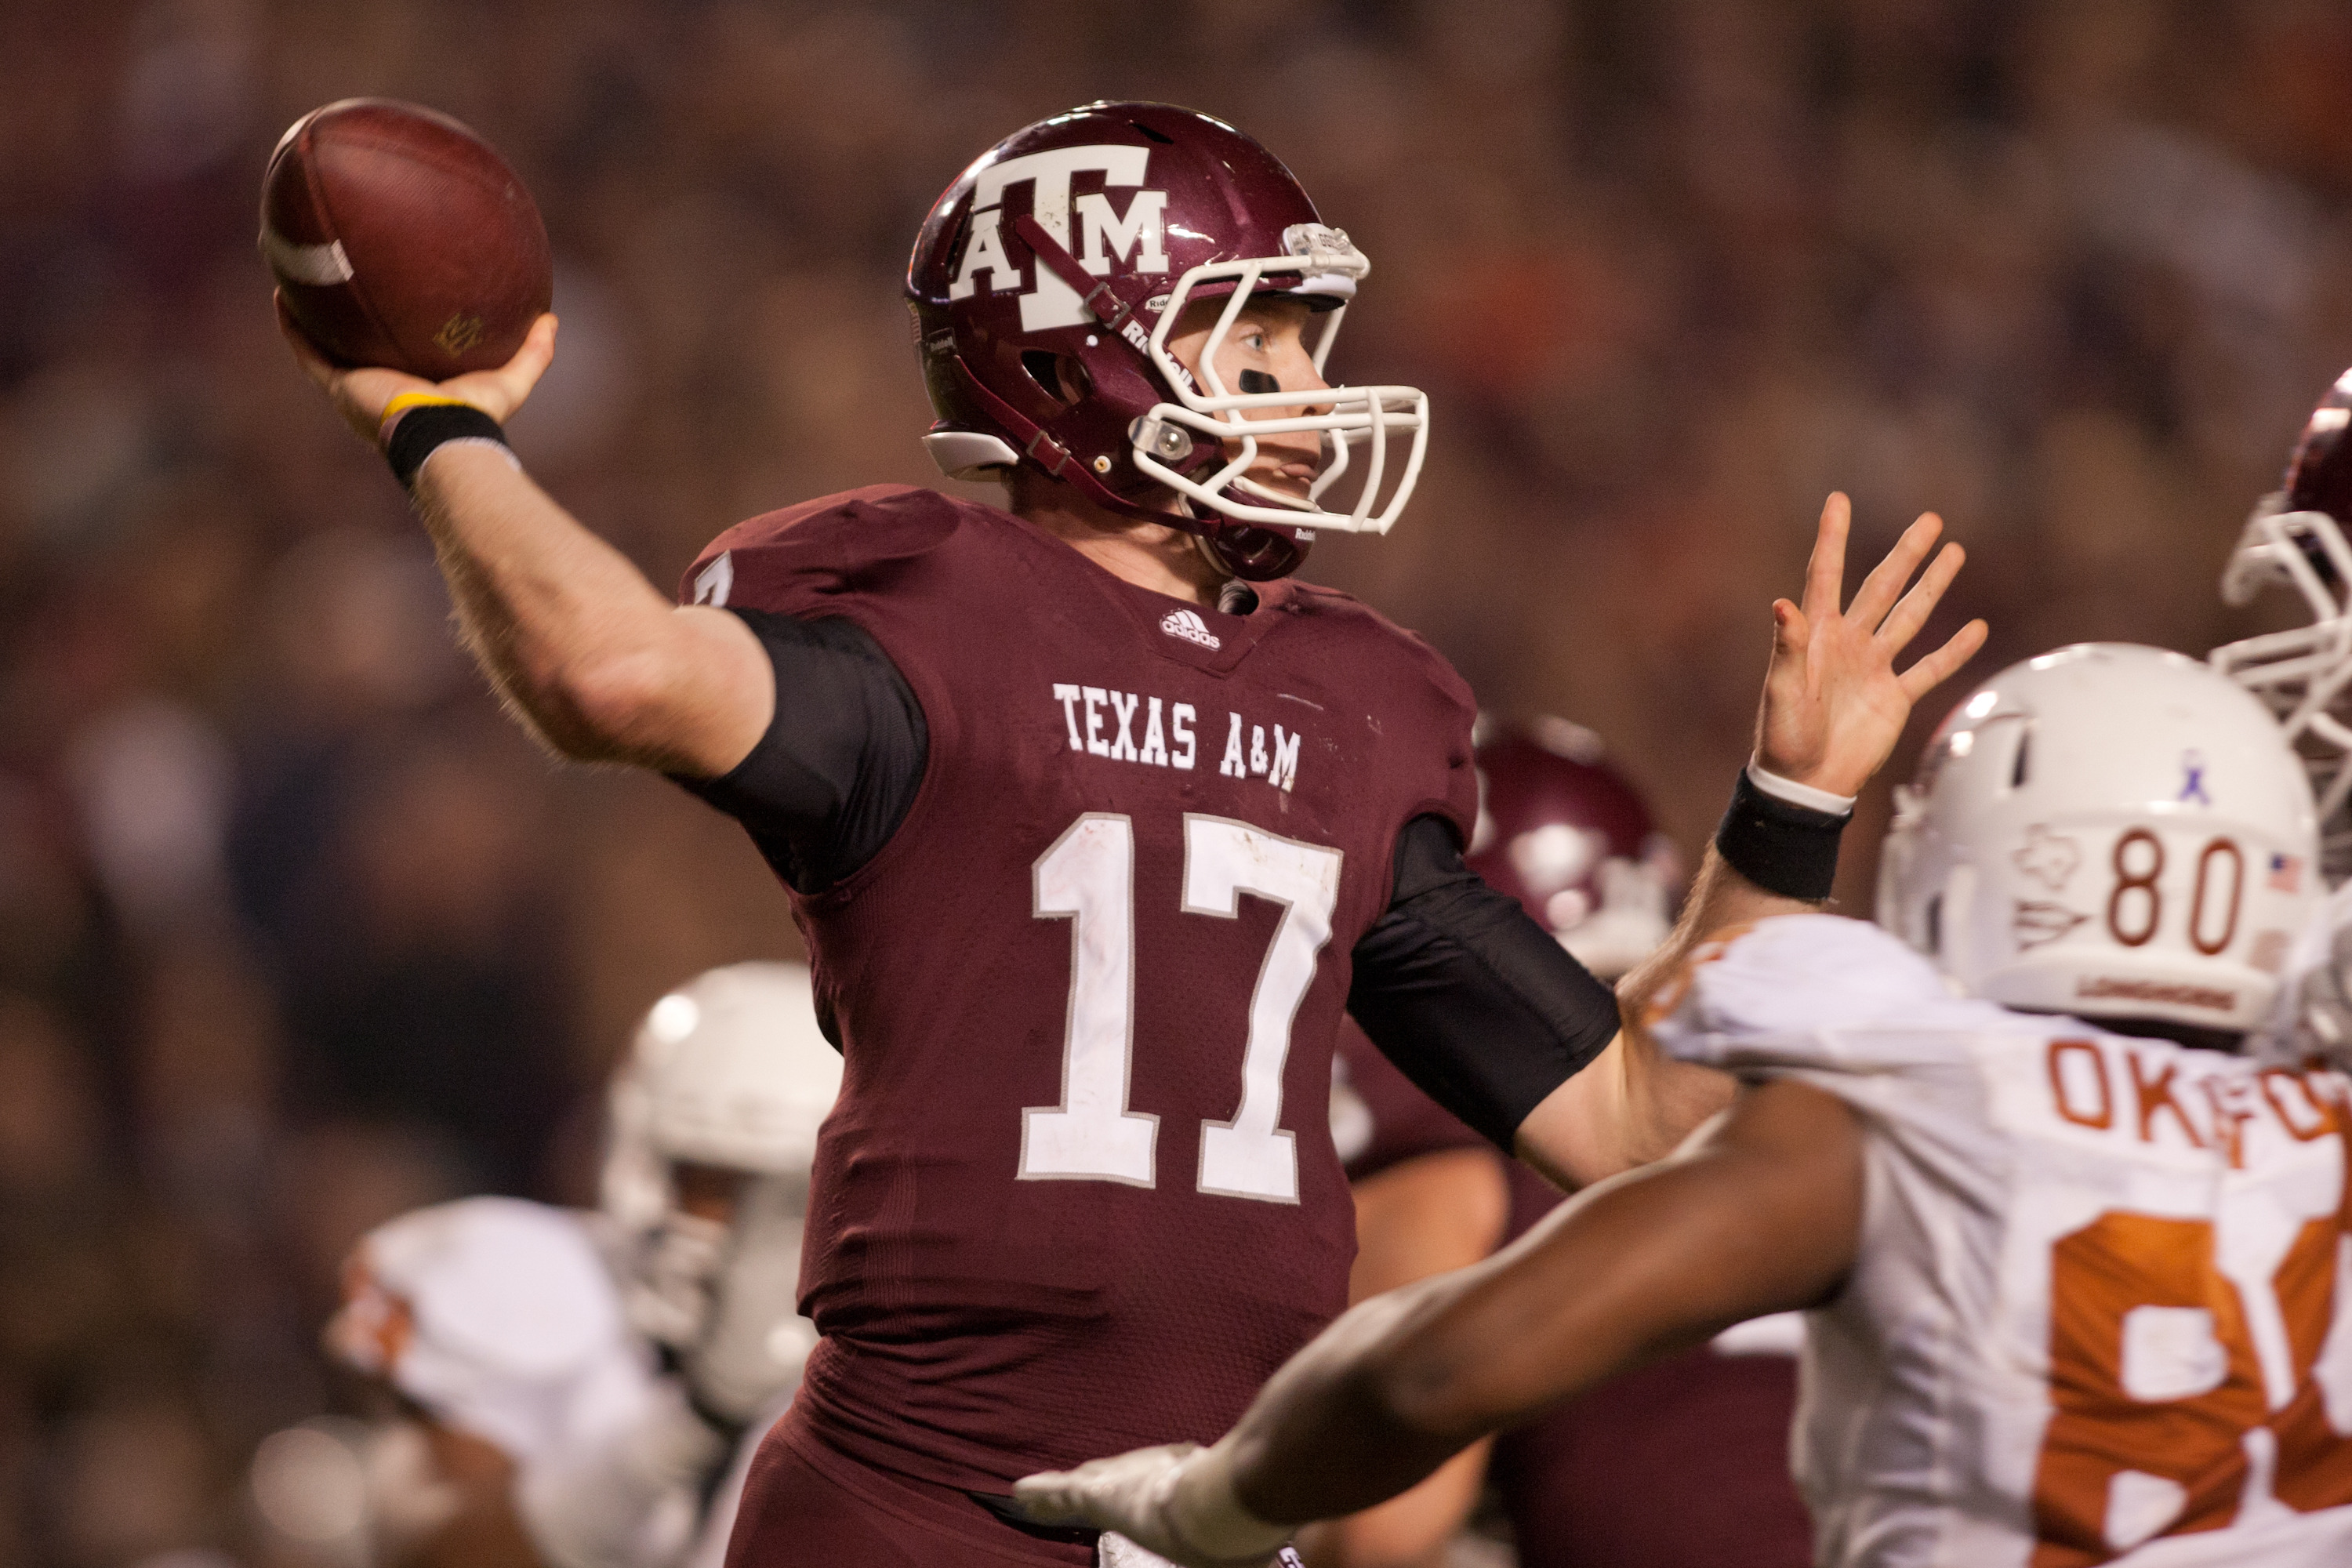 Texas A&M Football: Ryan Tannehill Solidifies Draft Stock with Pro Day  Workout | Bleacher Report | Latest News, Videos and Highlights